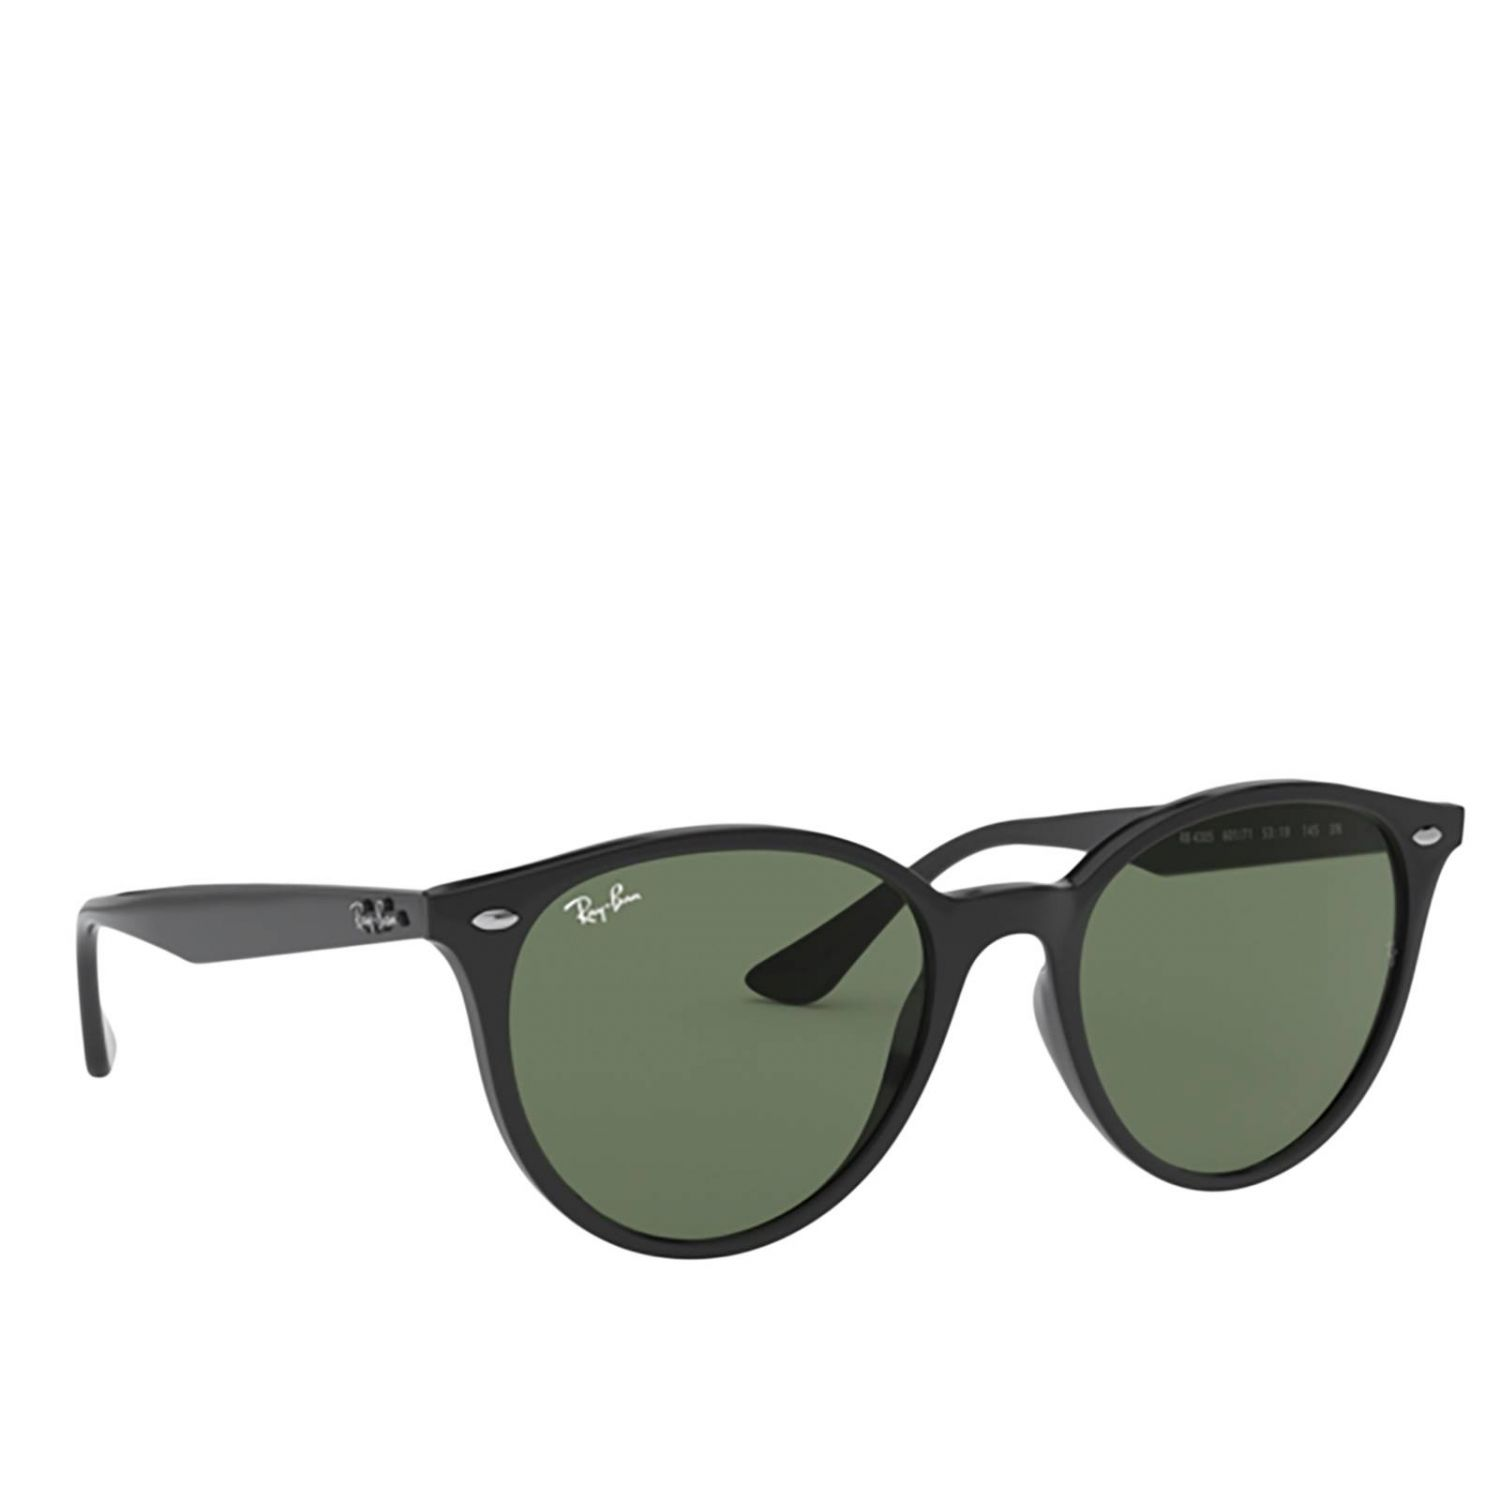 Glasses women Ray-ban black 1